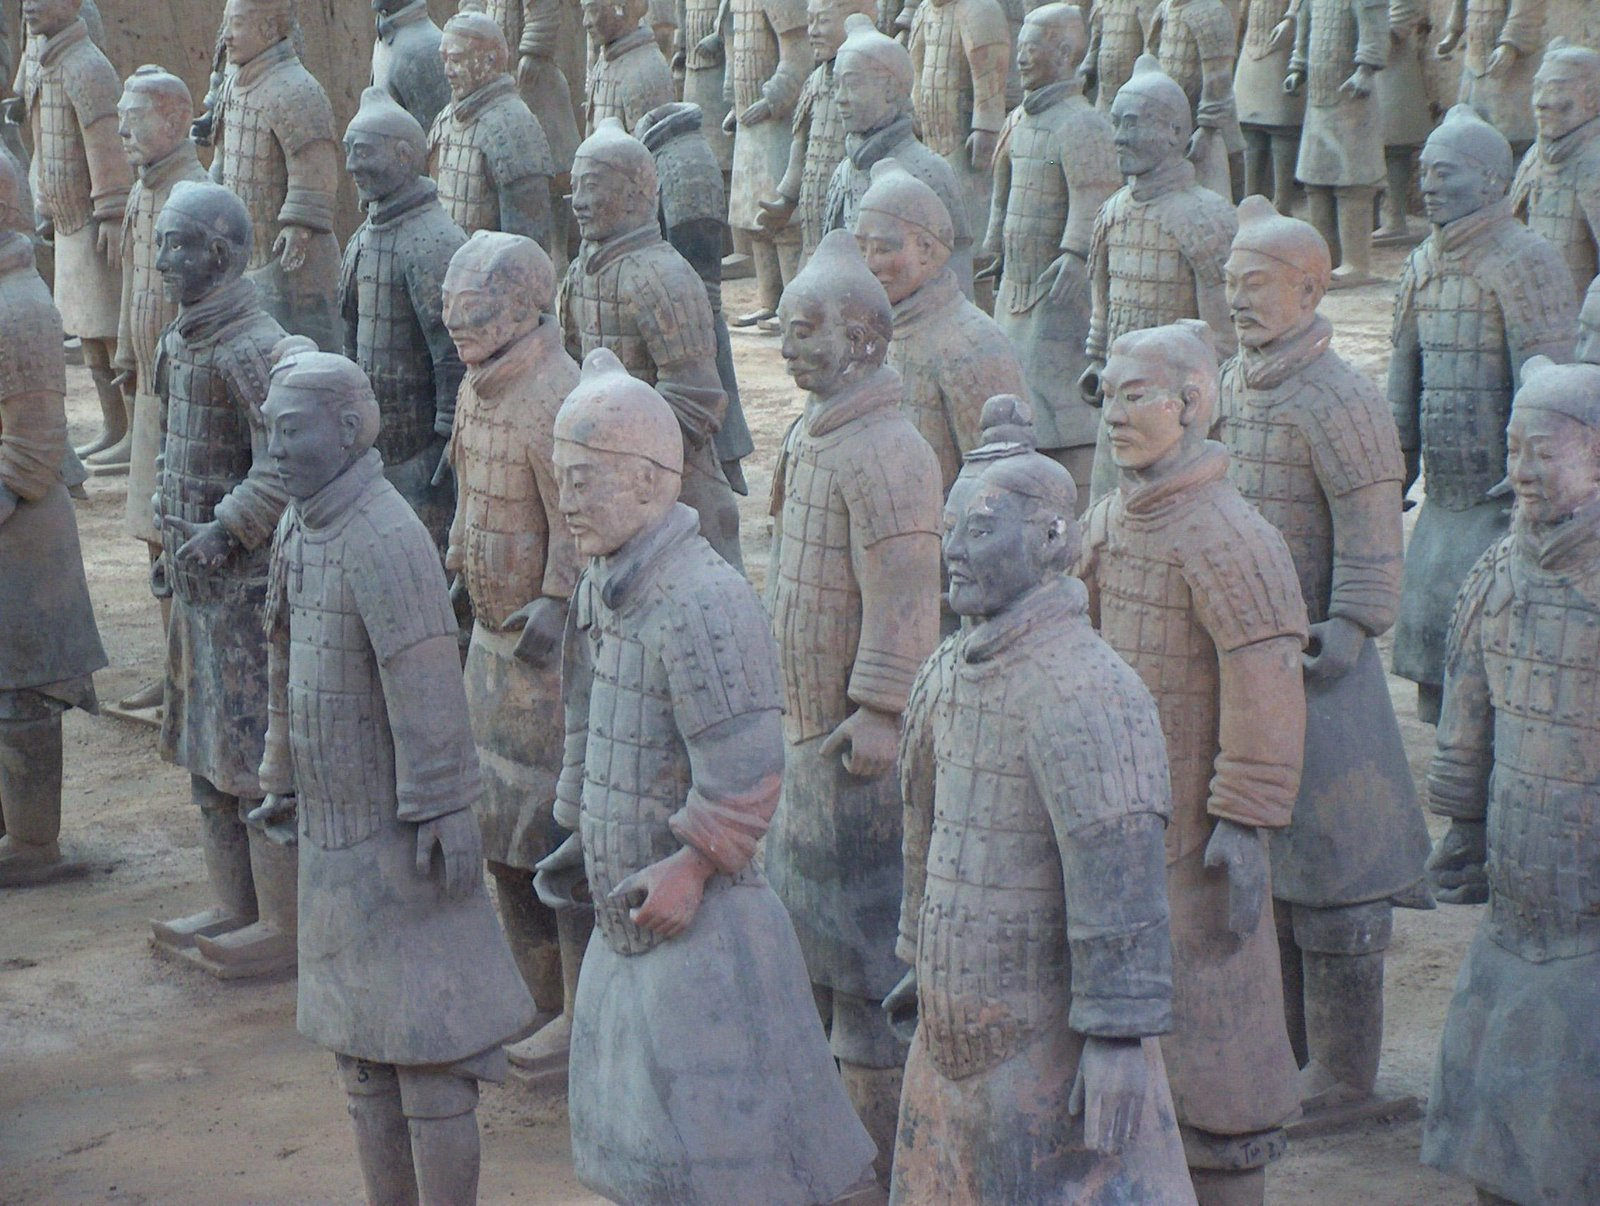 Emperor qin s intention in building such necropolis is to rule china